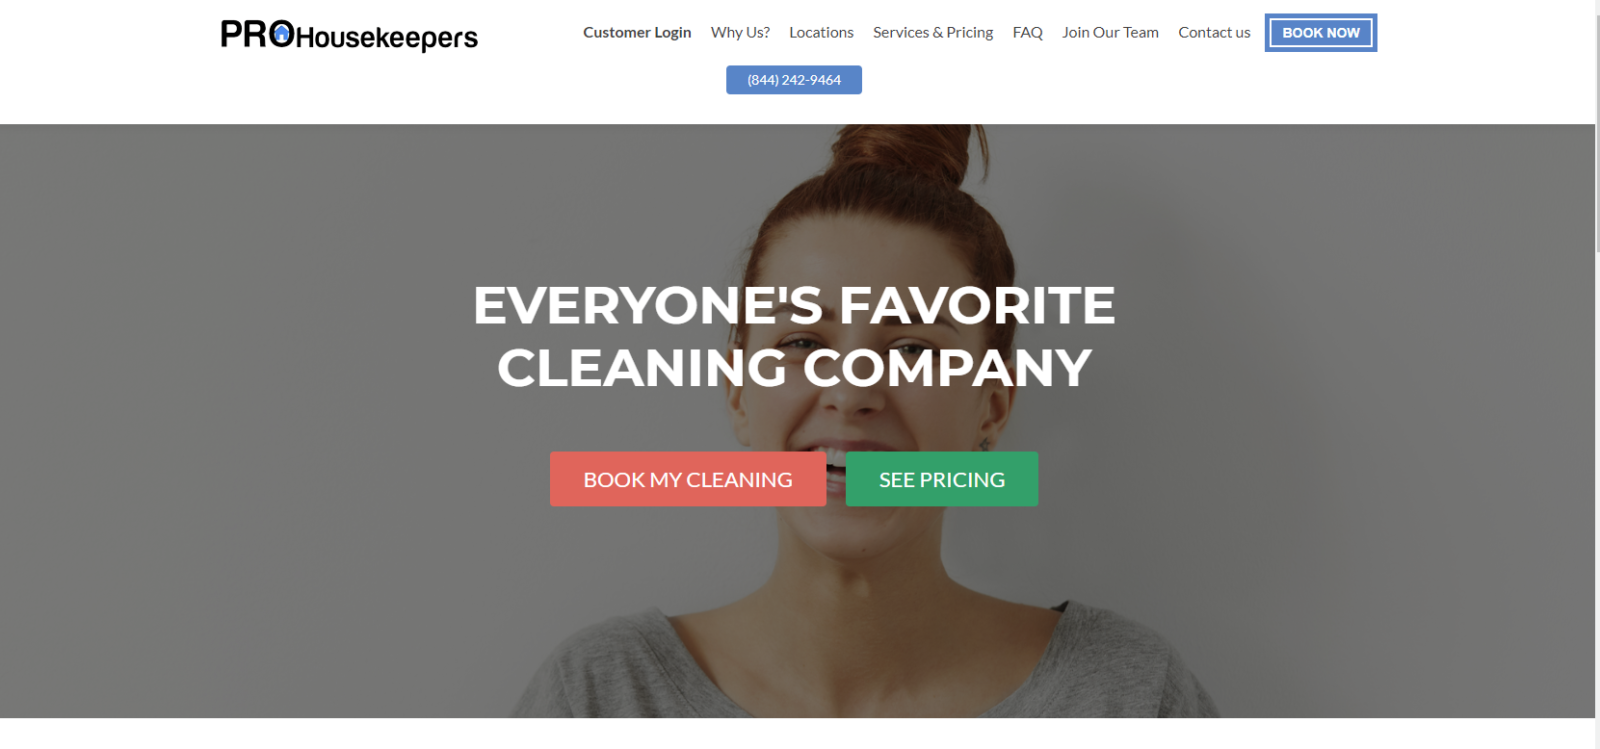 prohousekeepers.com